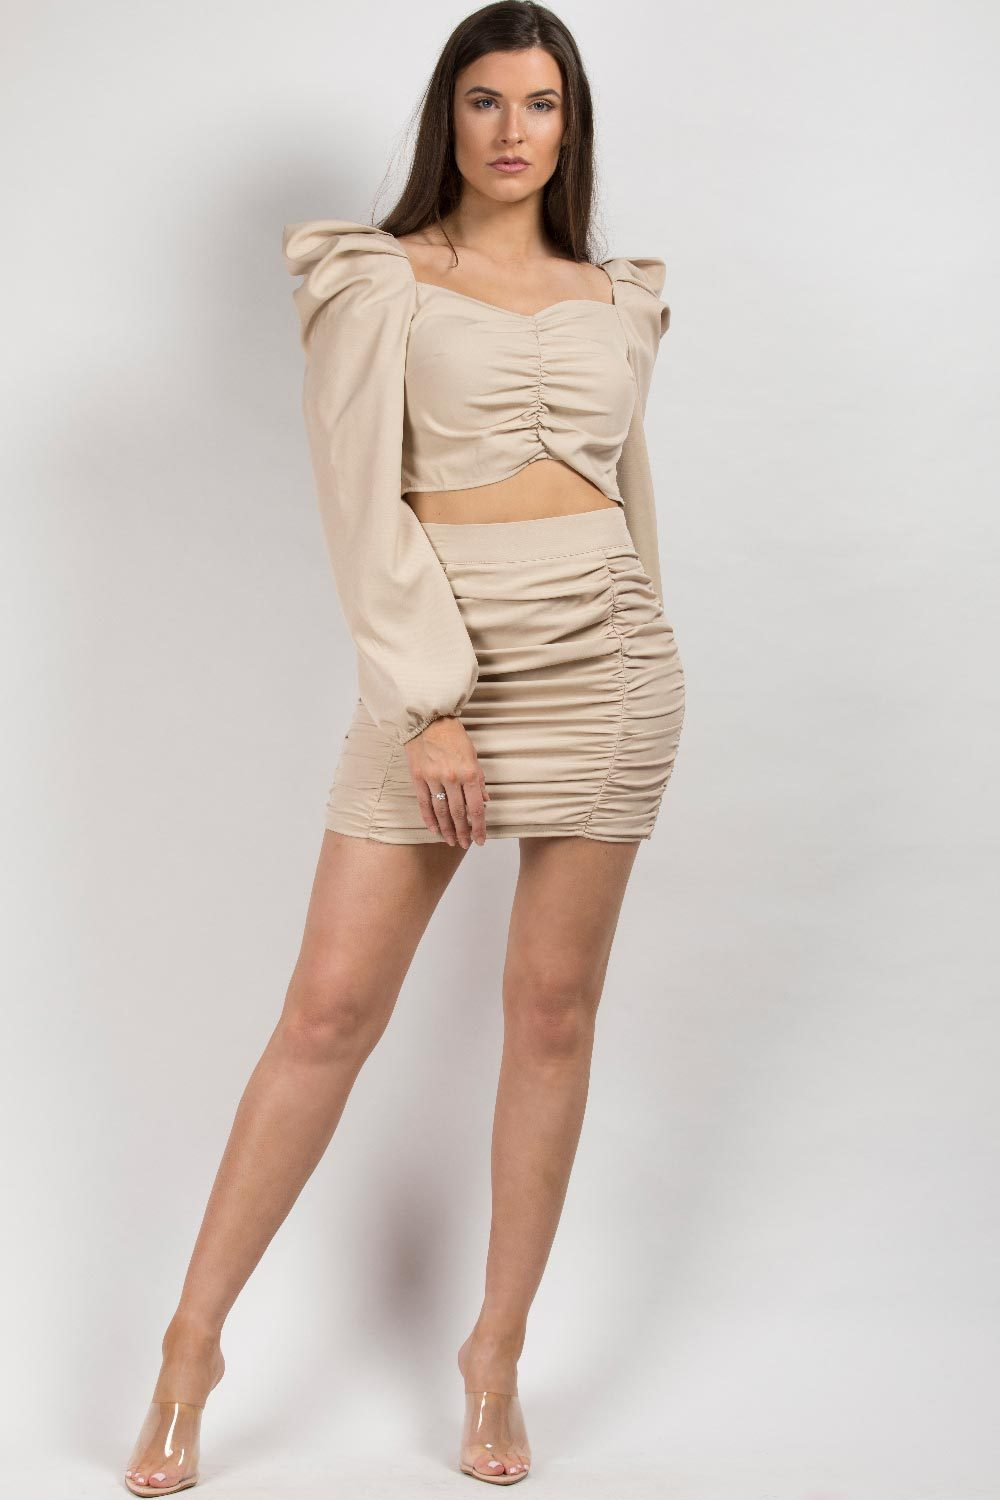 ruched mini skirt and crop top set